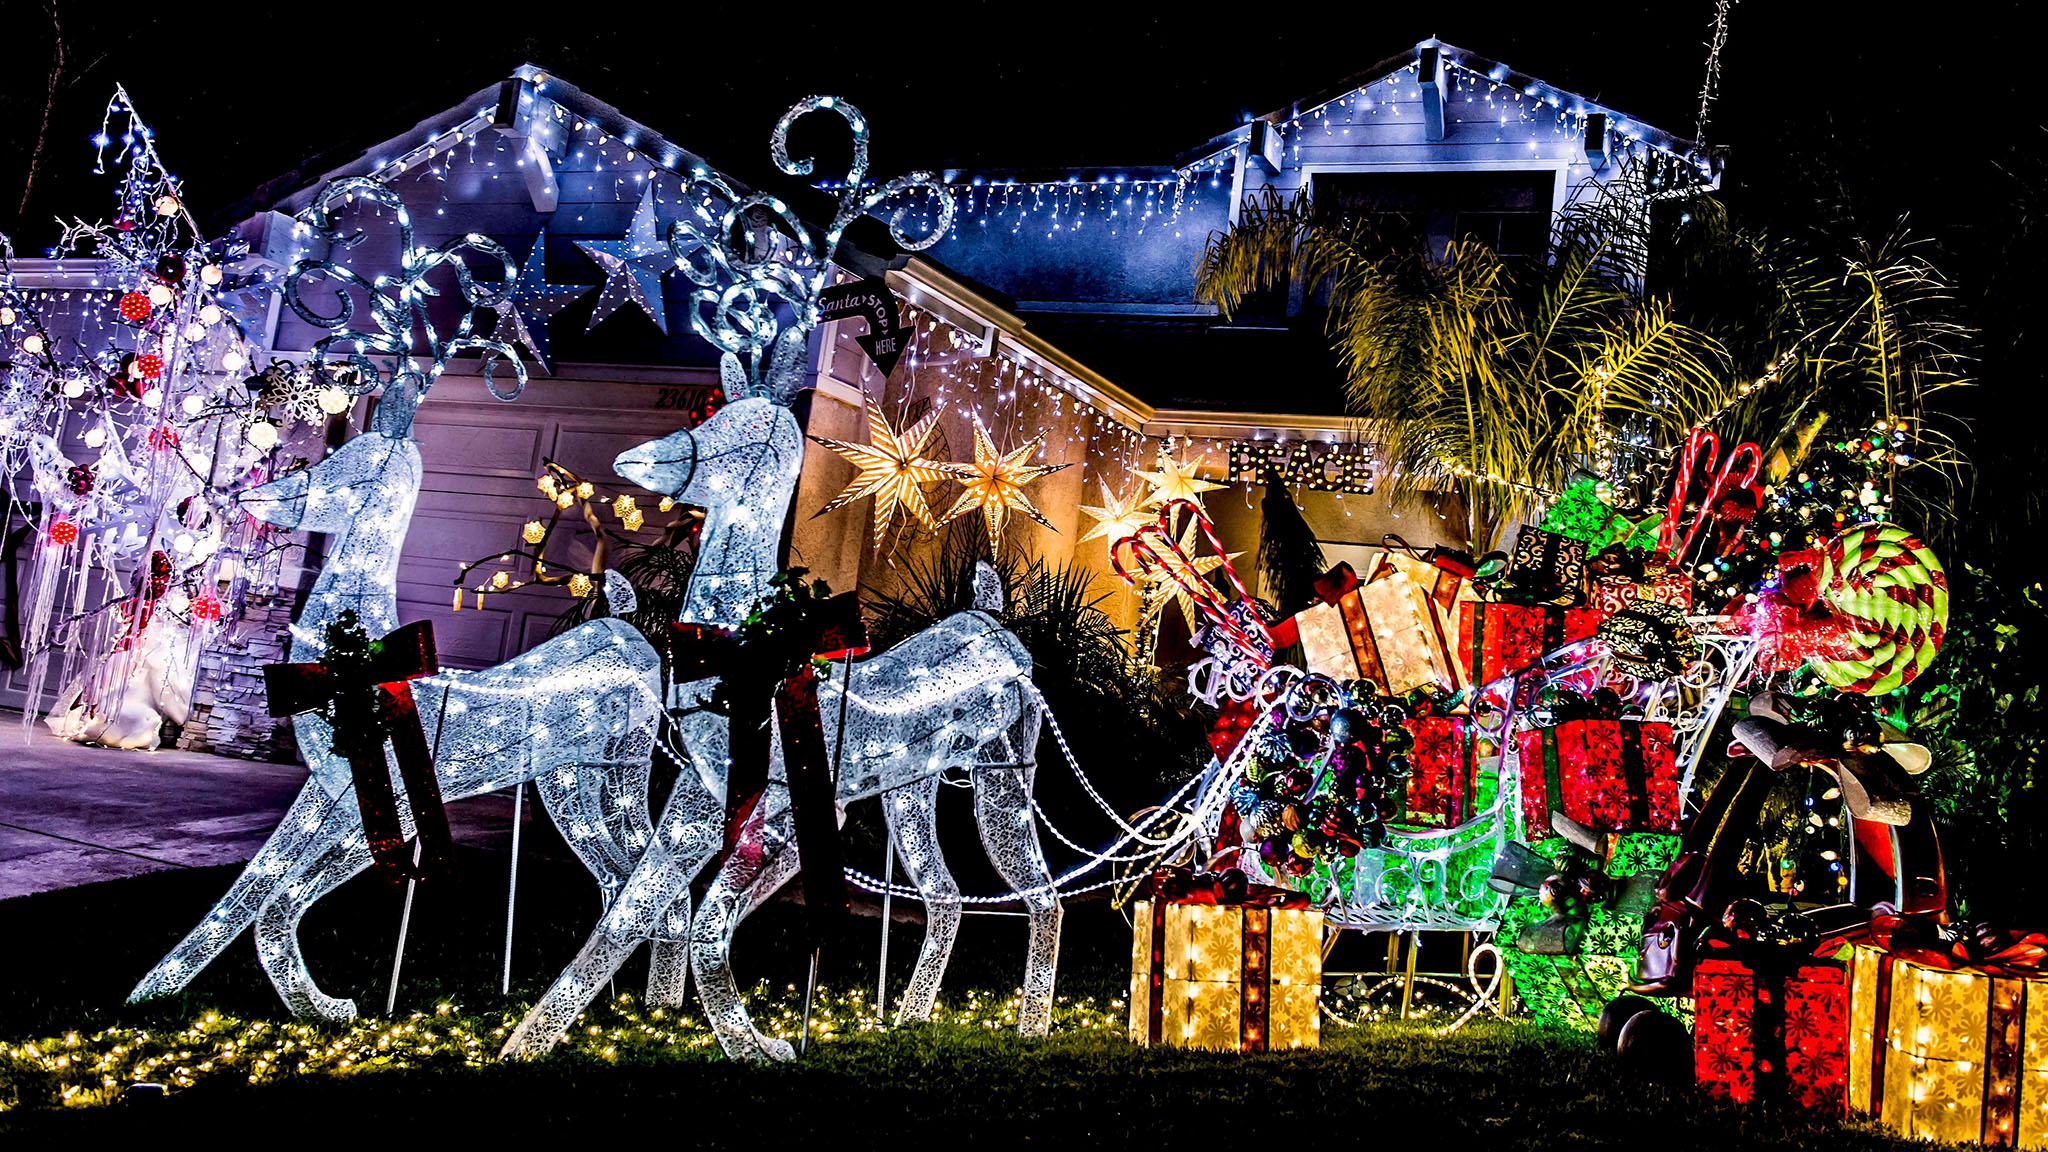 Christmas lights illuminate commercialism and community